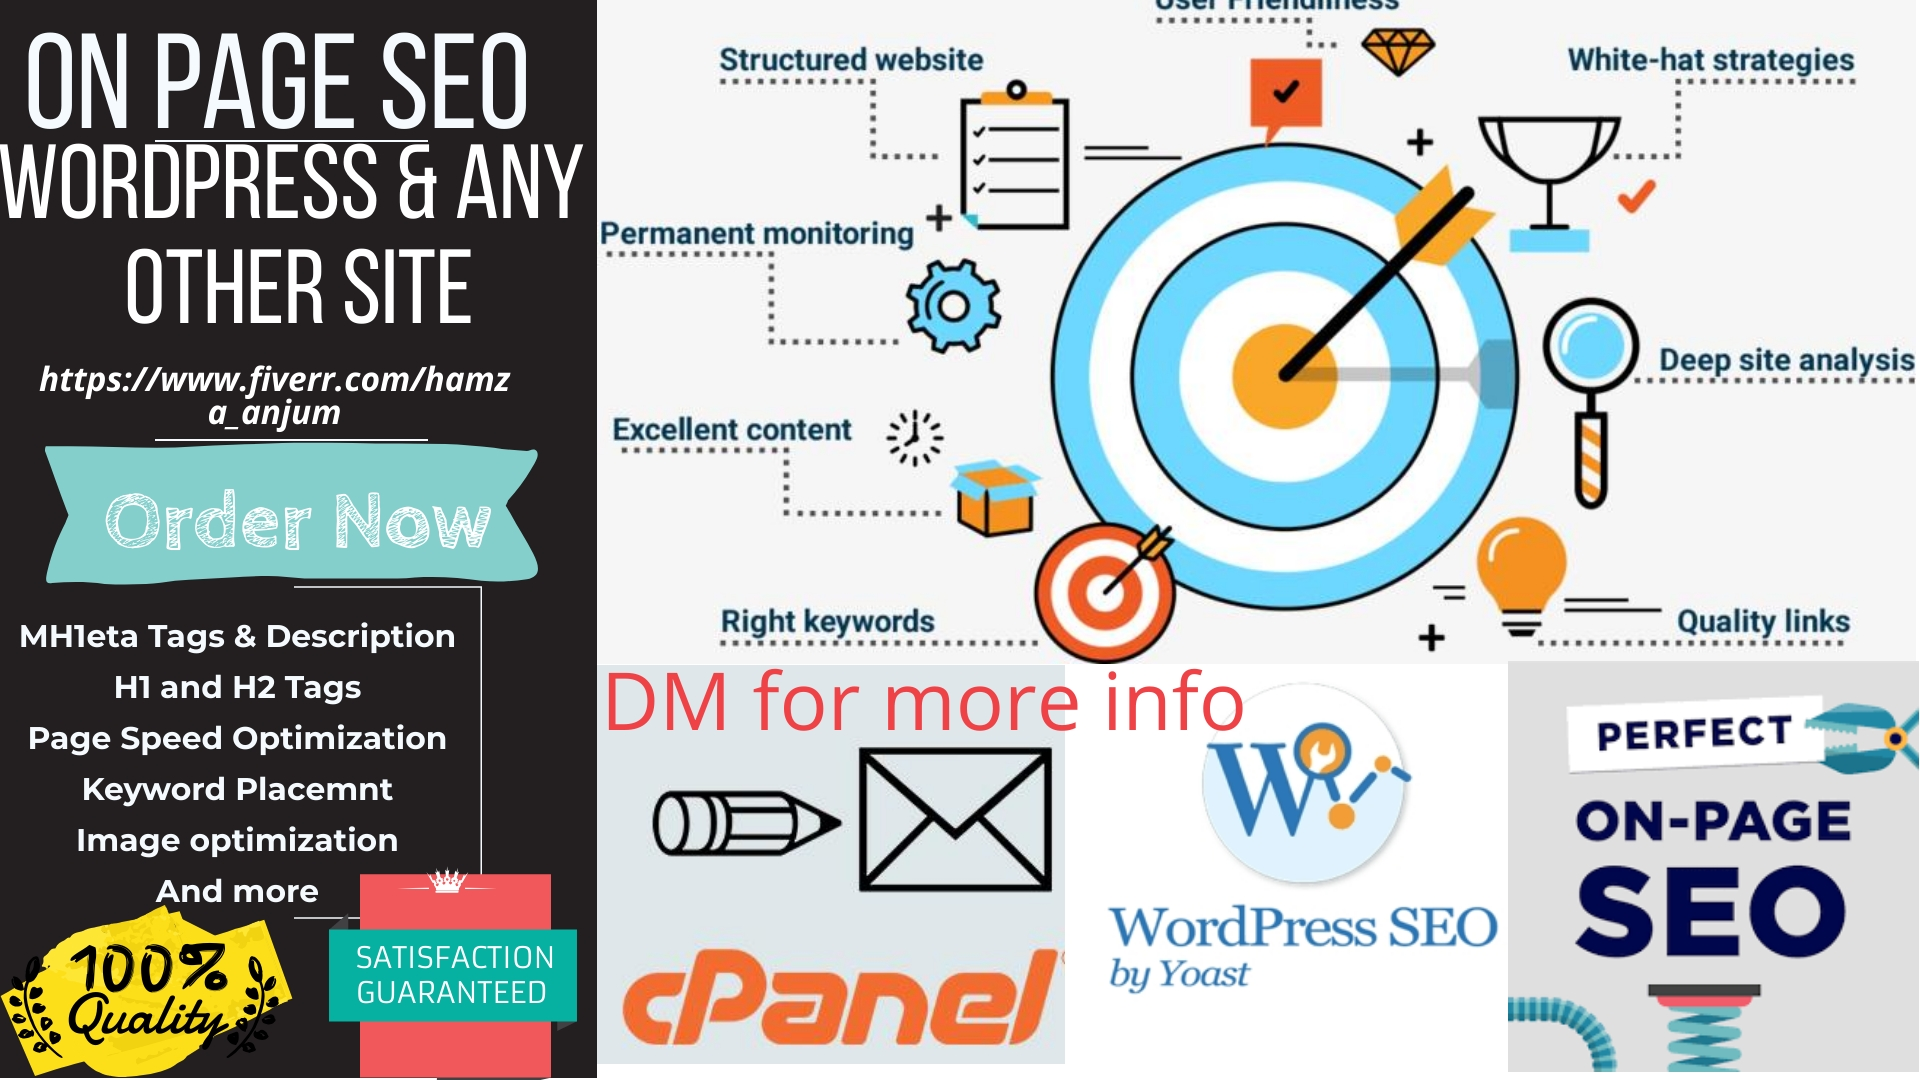 Complete on page SEO for wordpress and any other site